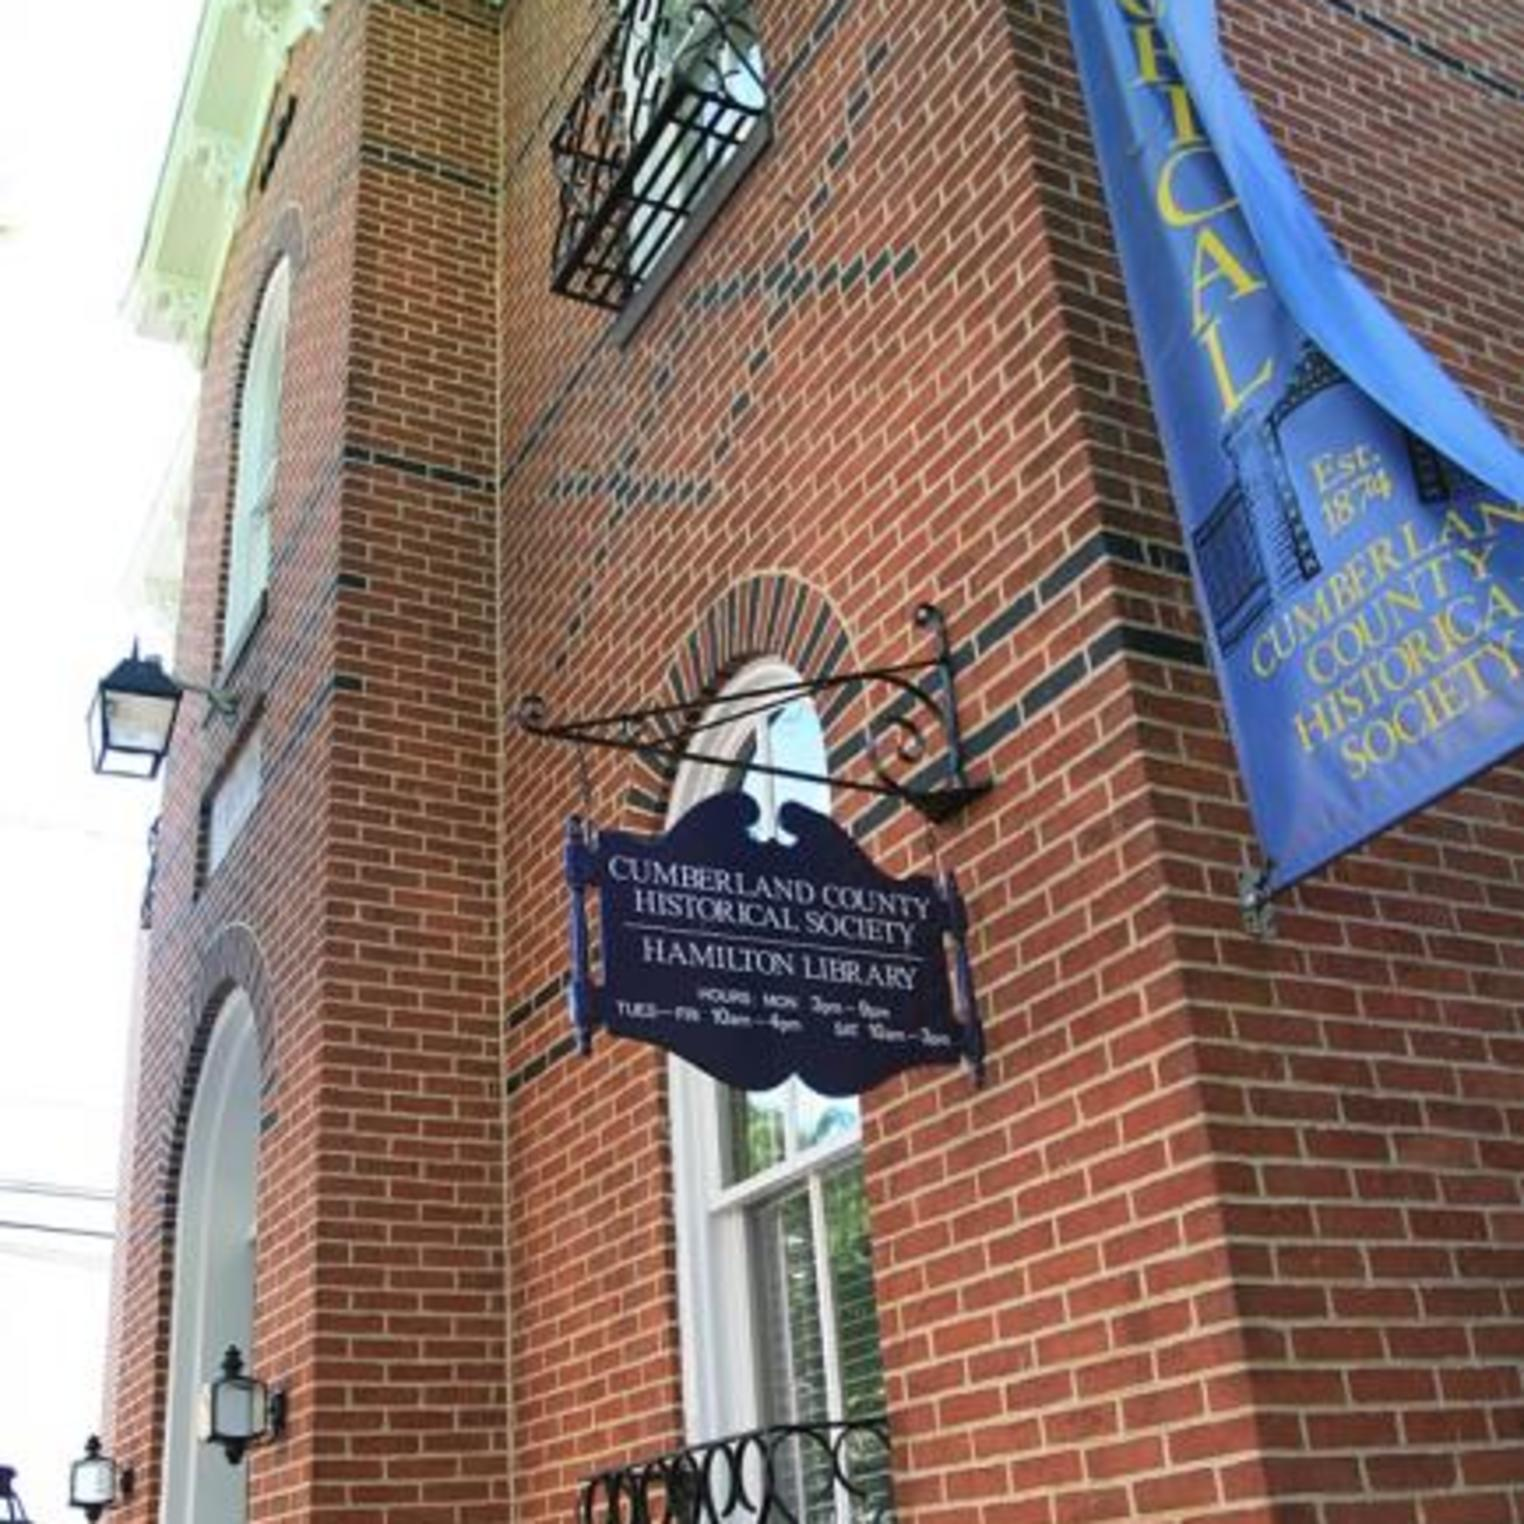 Cumberland County Historical Society and Hamilton Library